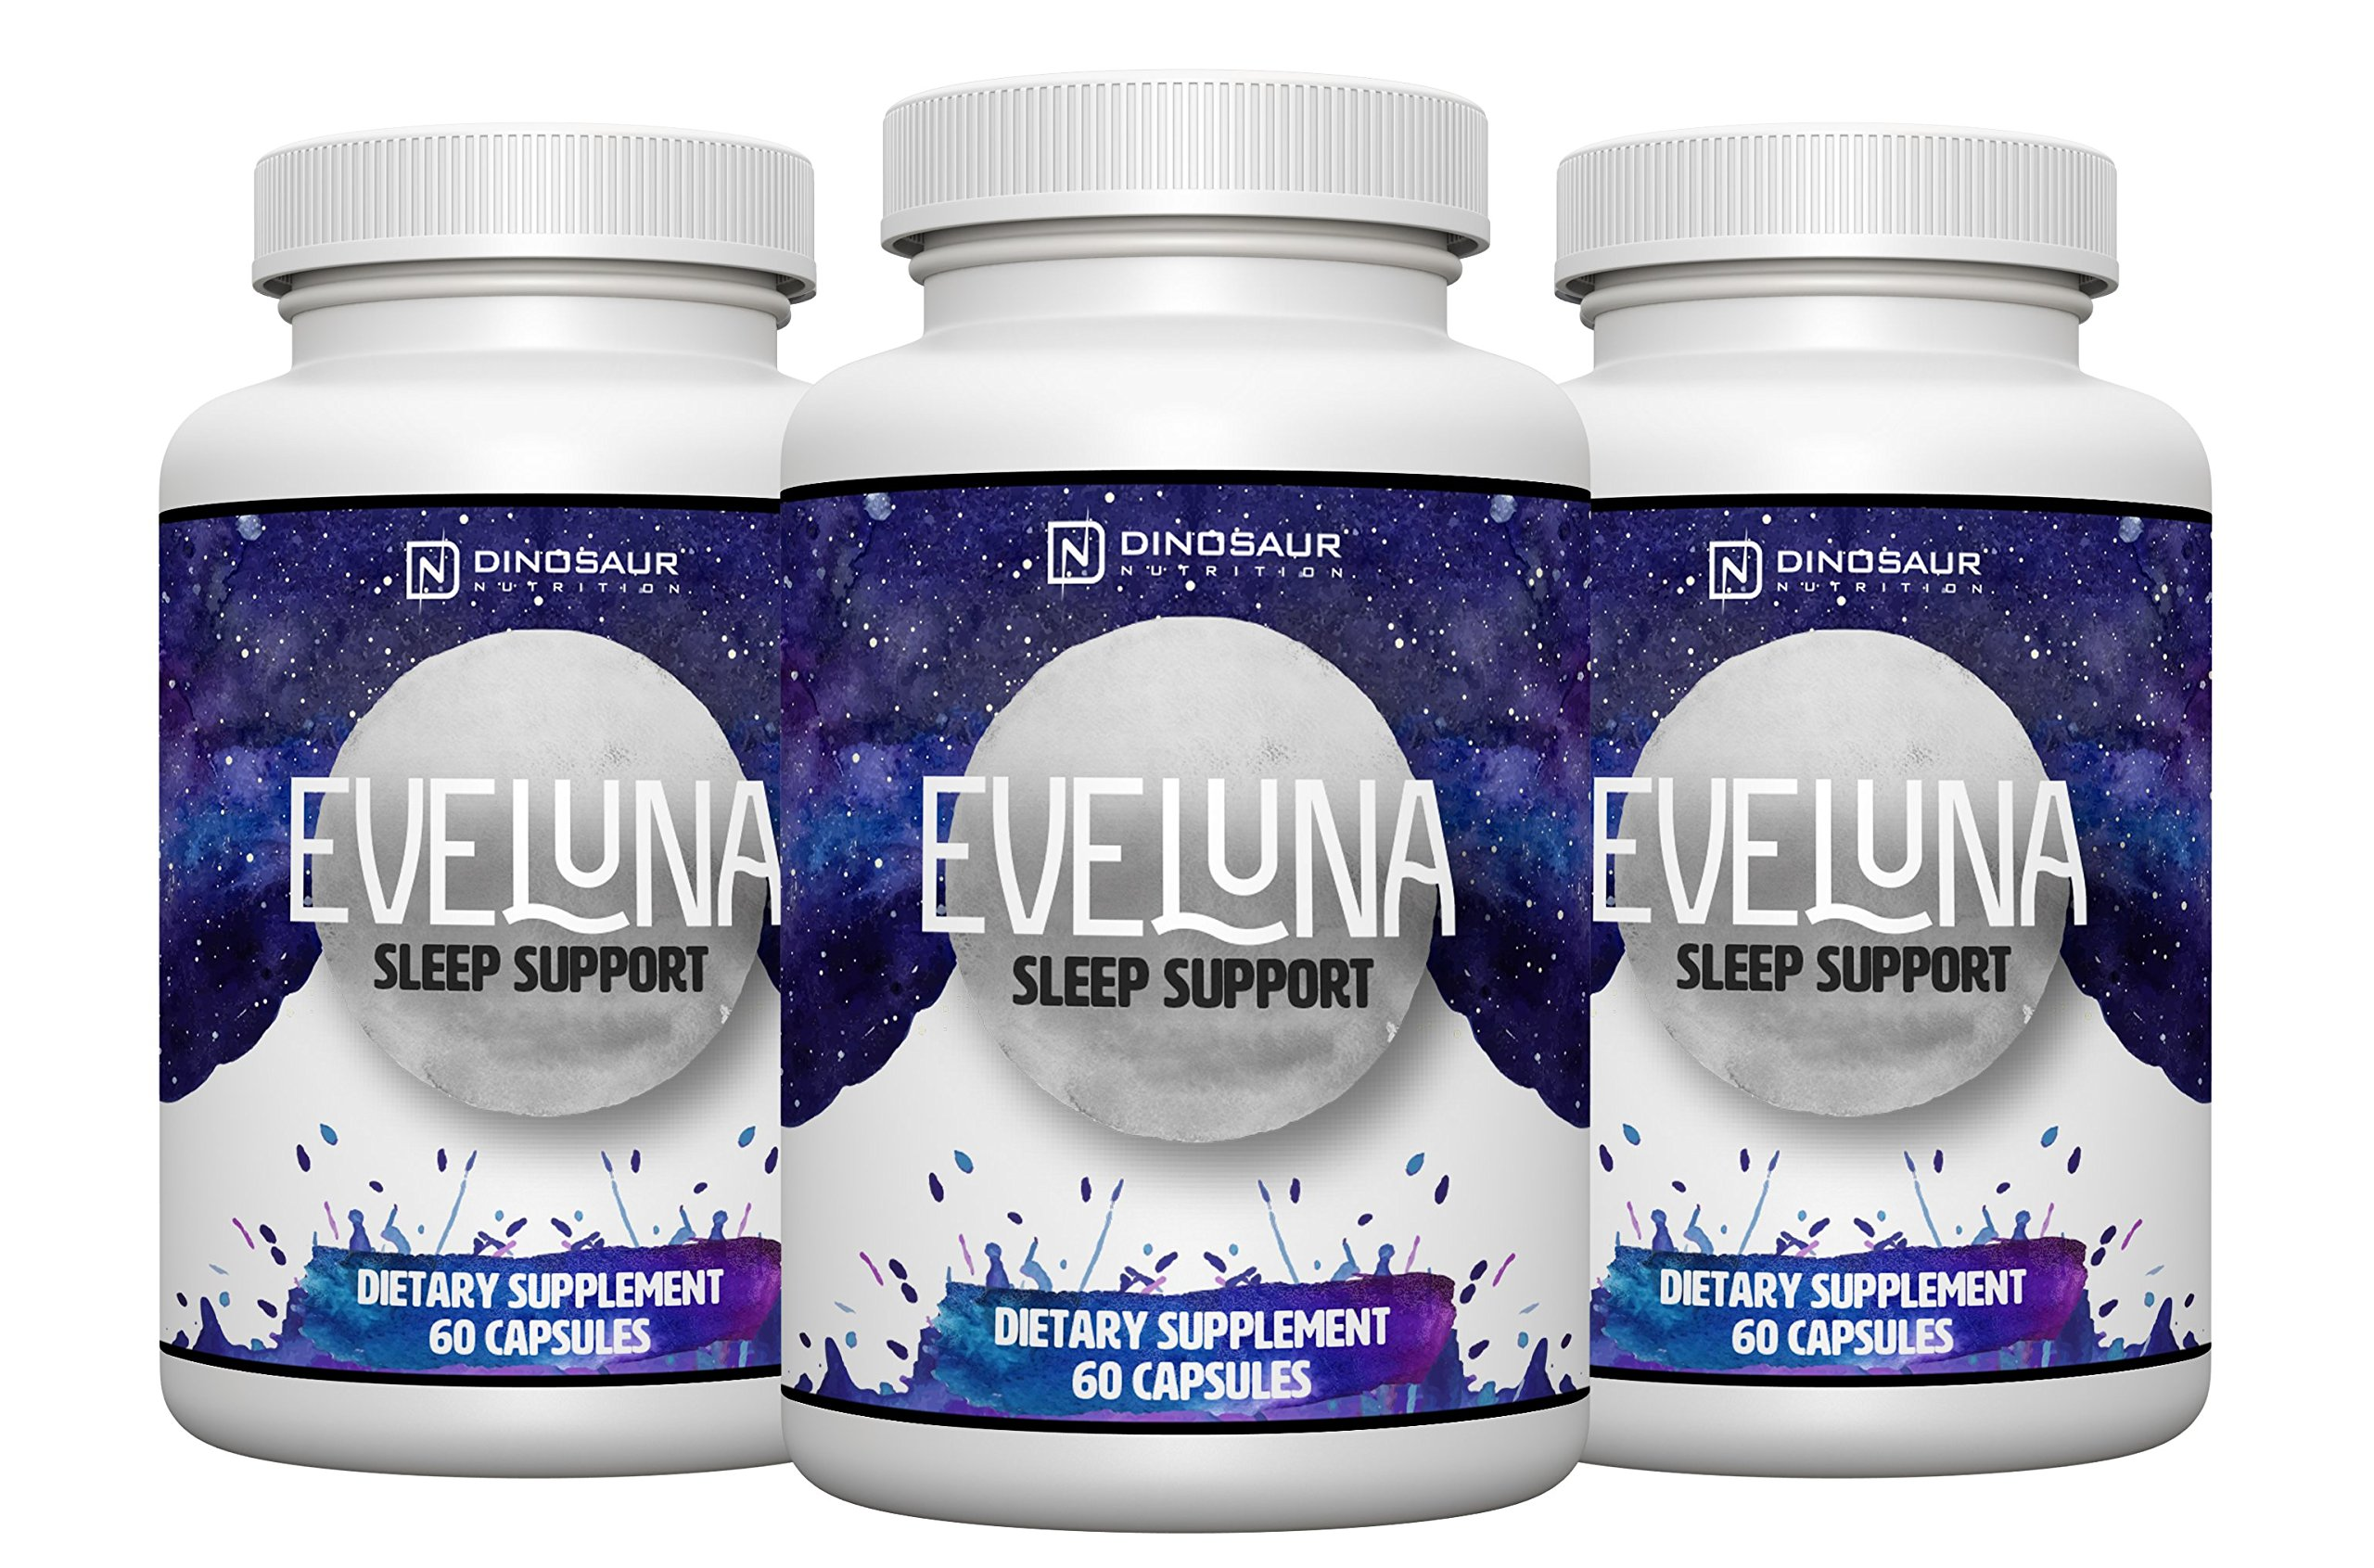 Eveluna - Natural Sleep Aid Supplement with Melatonin, Valerian, Tryptophan, 5-HTP and More - Non-Habit Forming Sleeping Pill Support - Wake Rested And Refreshed - 60 Veggie Capsules (3)